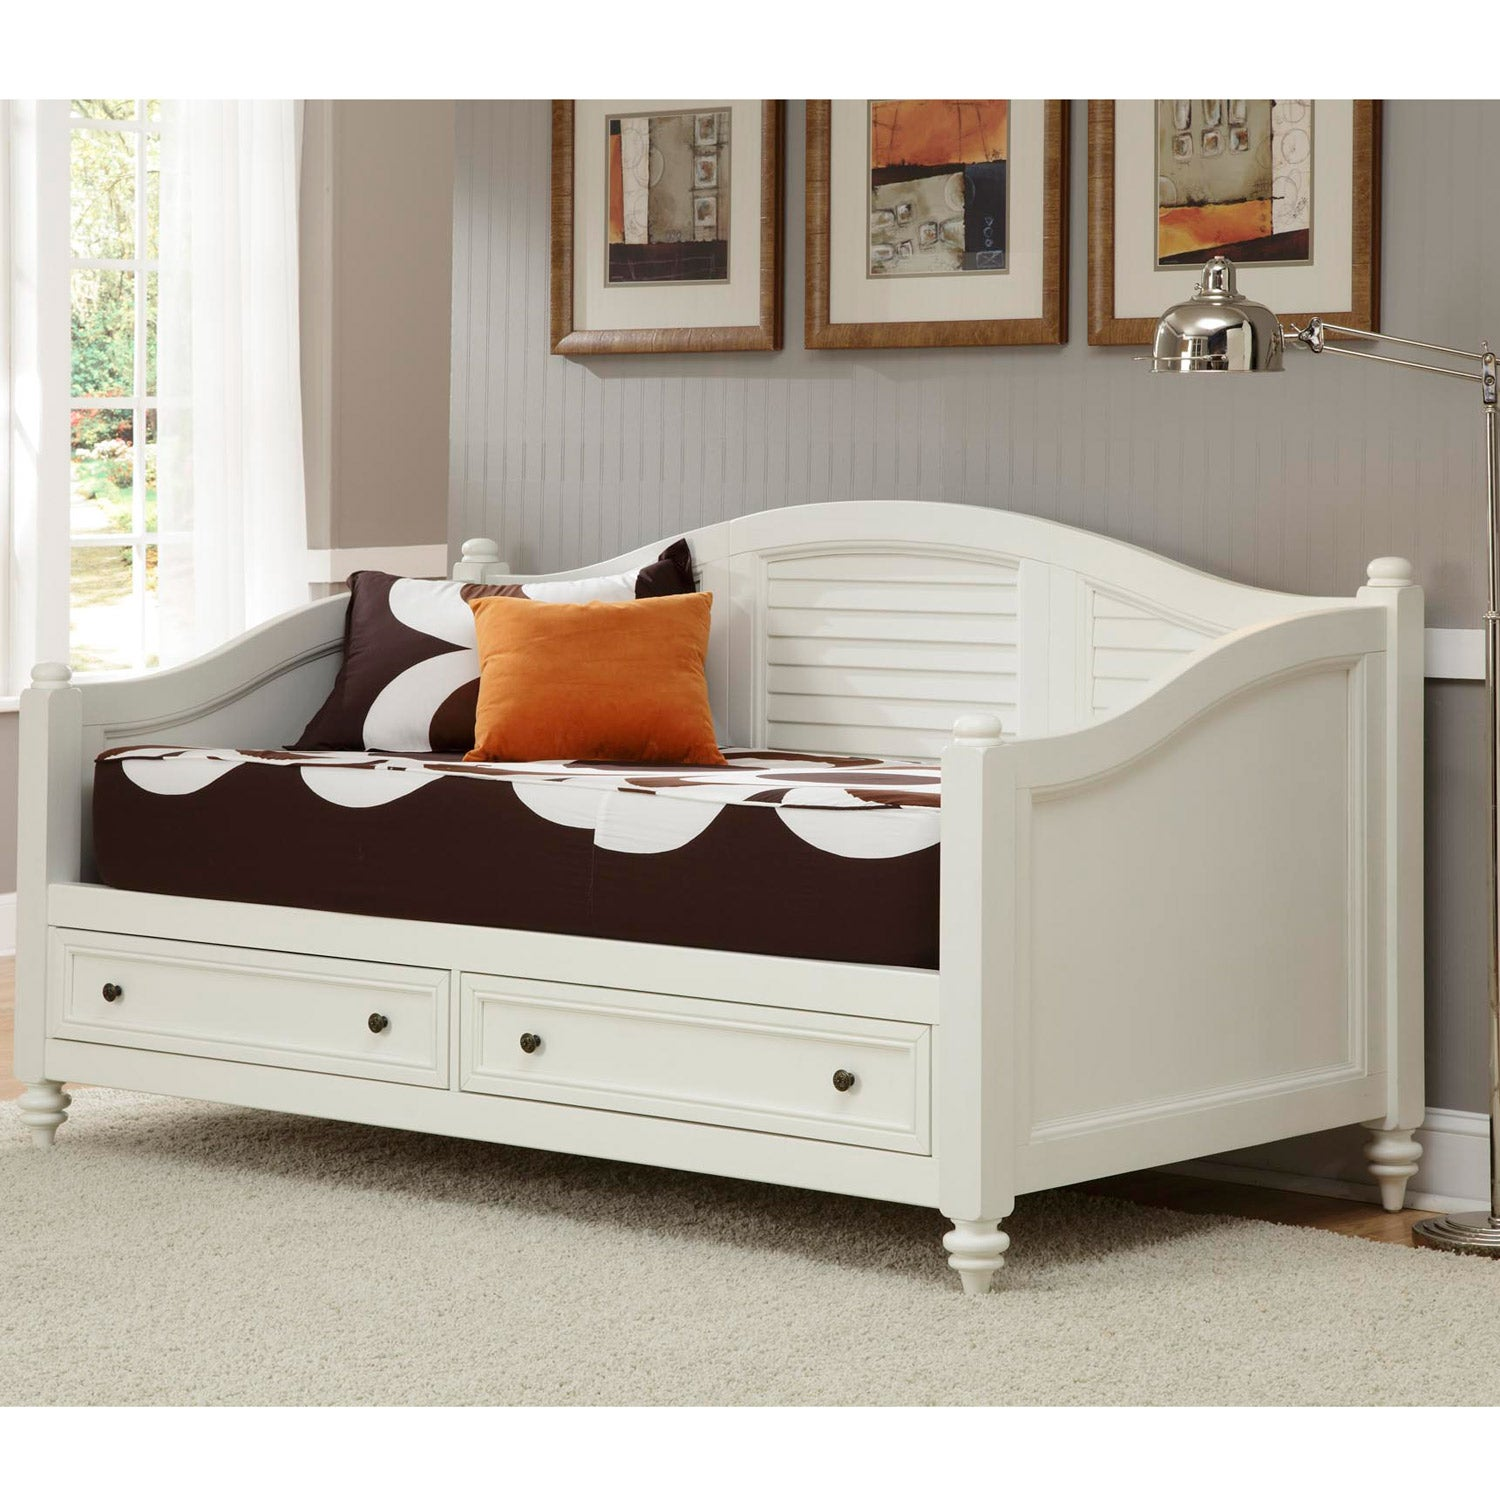 Bermuda Brushed White Finish Twin-size DayBed